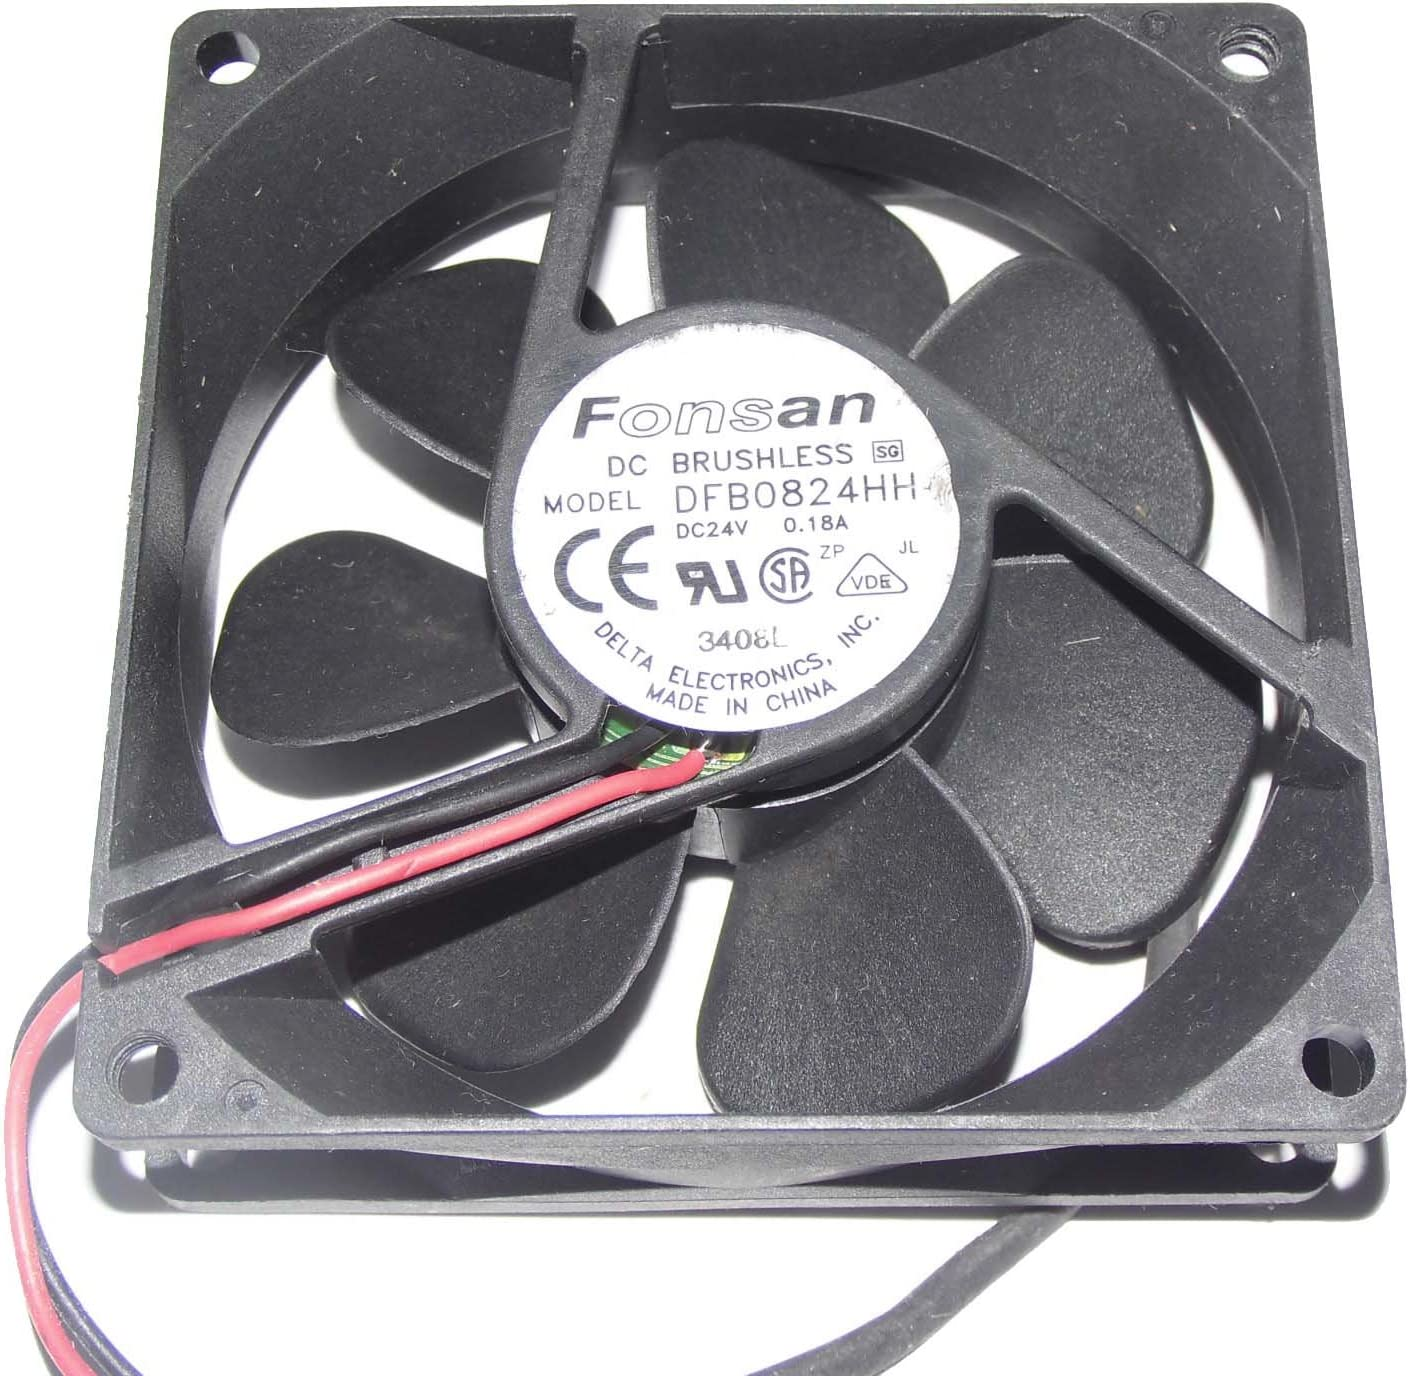 For 1 PC FONSAN DFB0824HH Fan 80*80*25mm 2 Pin 24V 0.18A